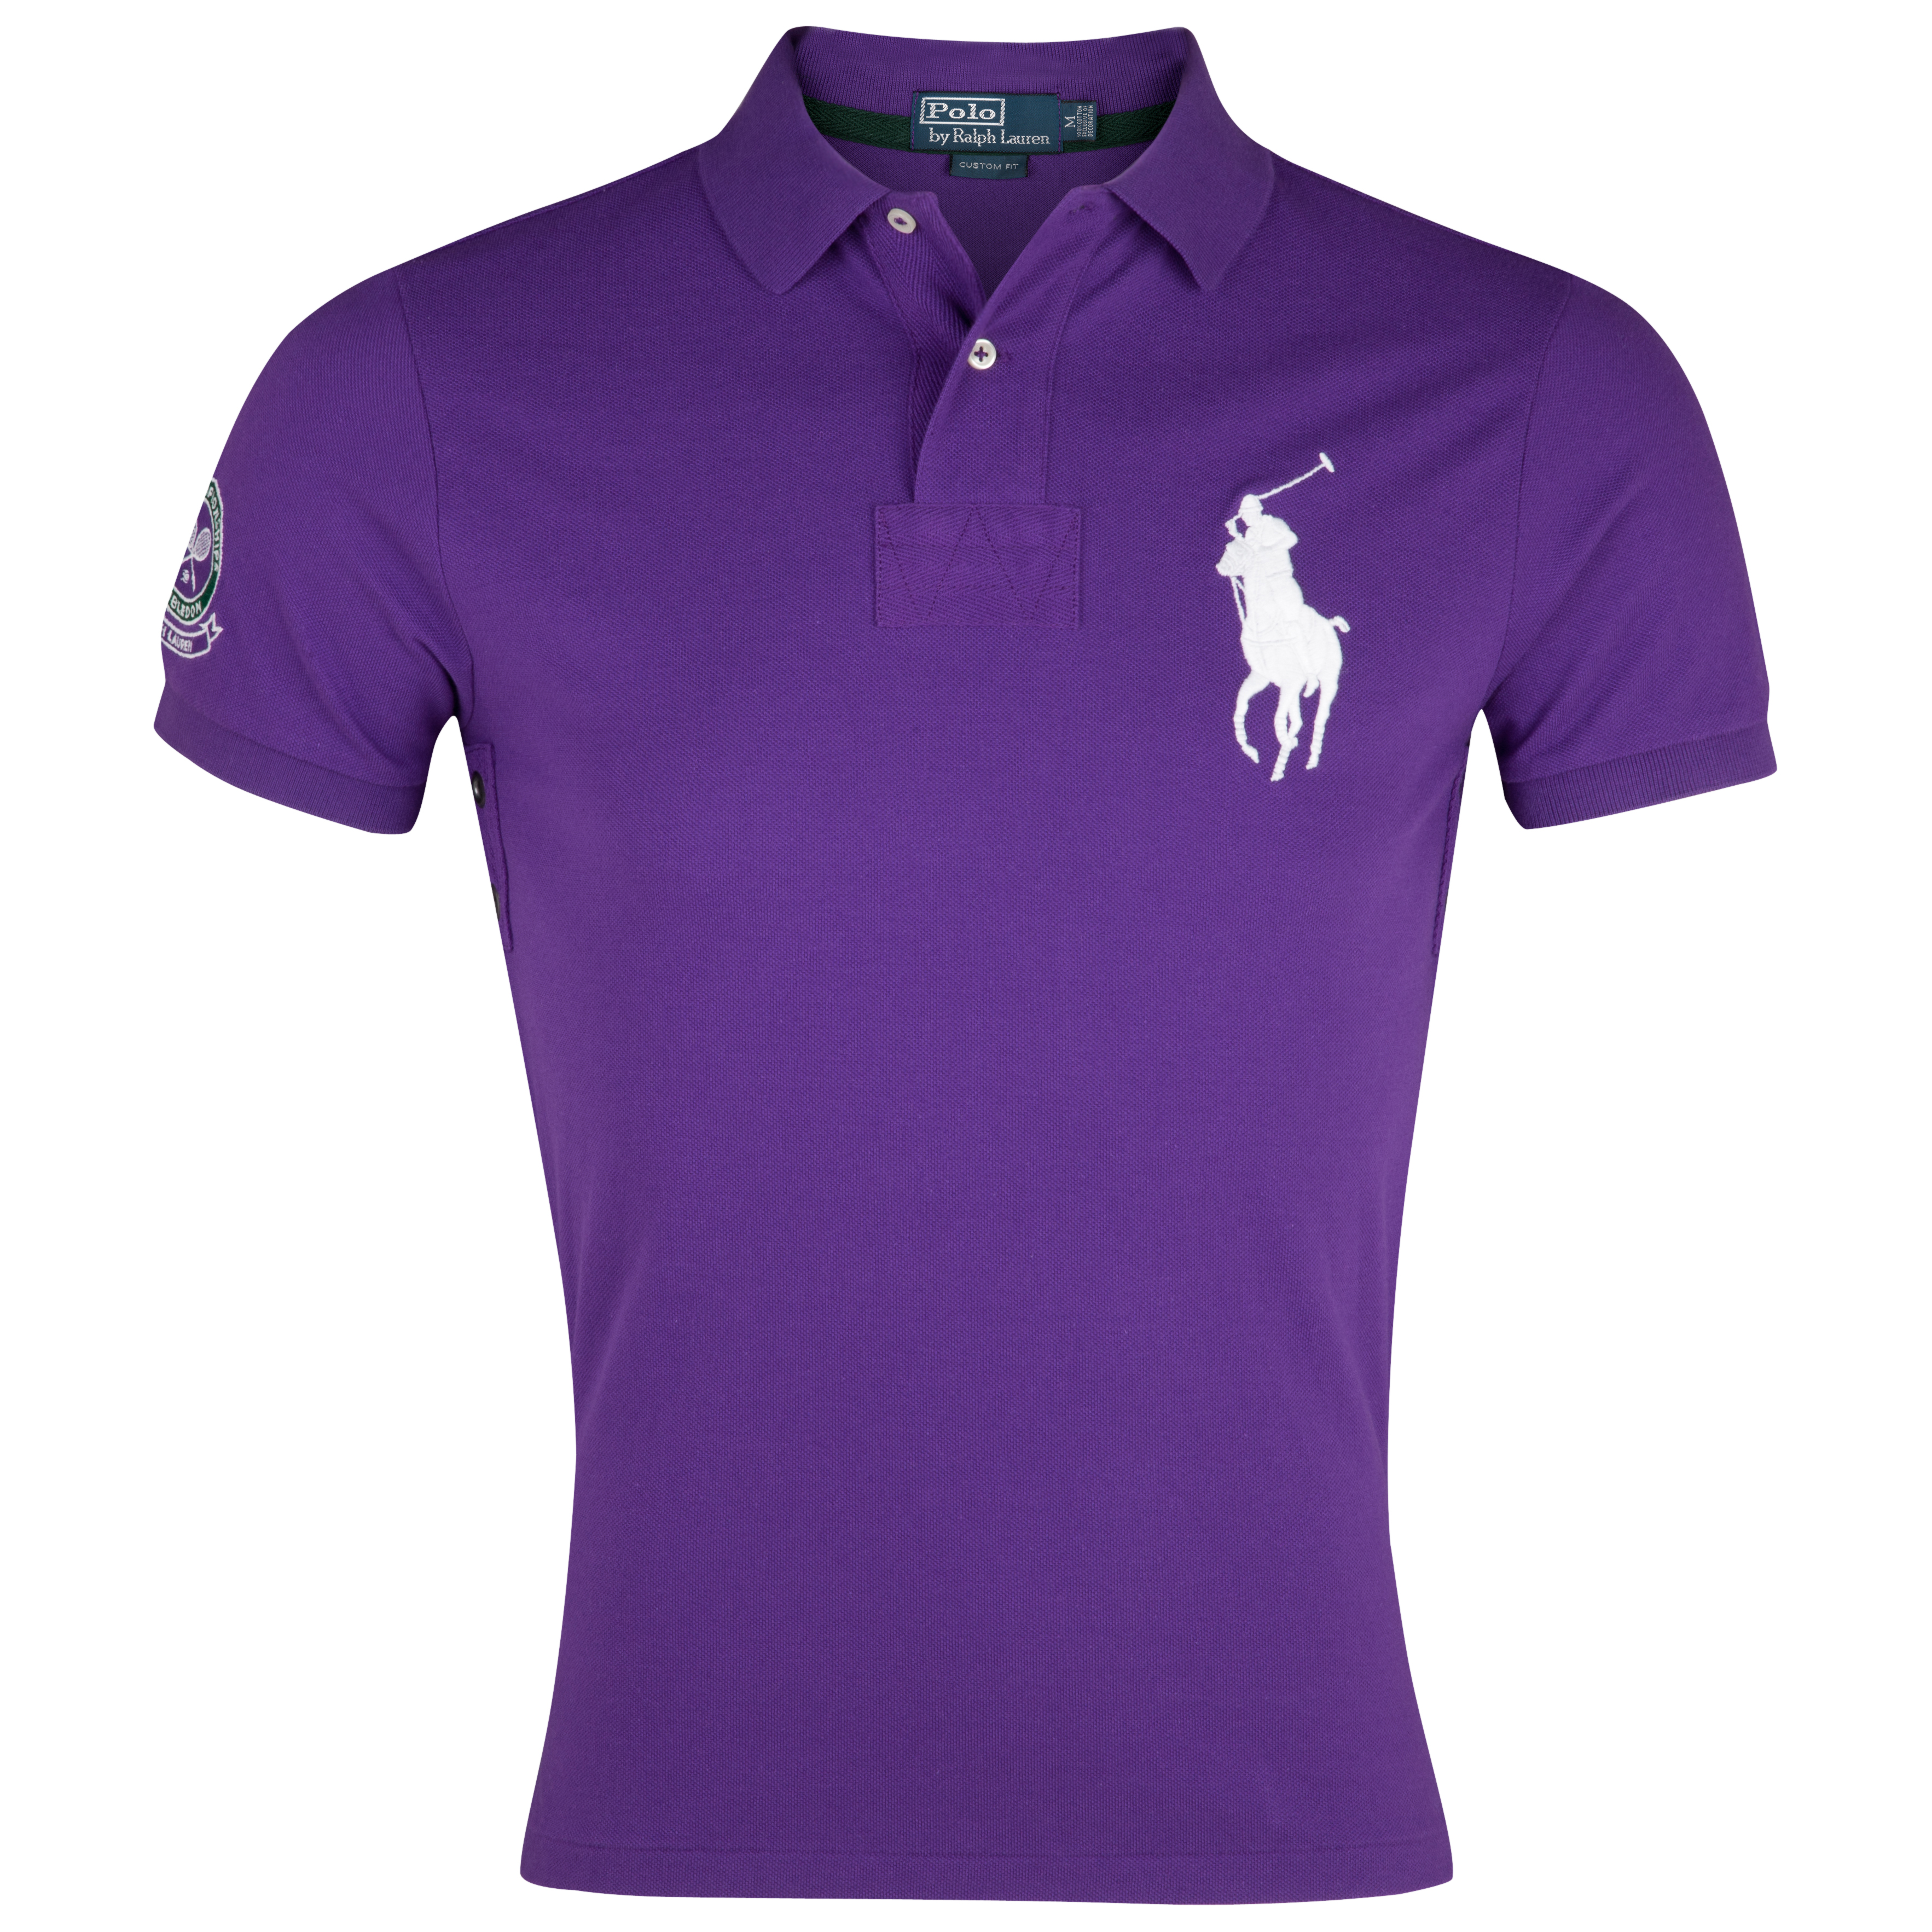 Polo Ralph Lauren Wimbledon Short Sleeve Polo - Empire Purple